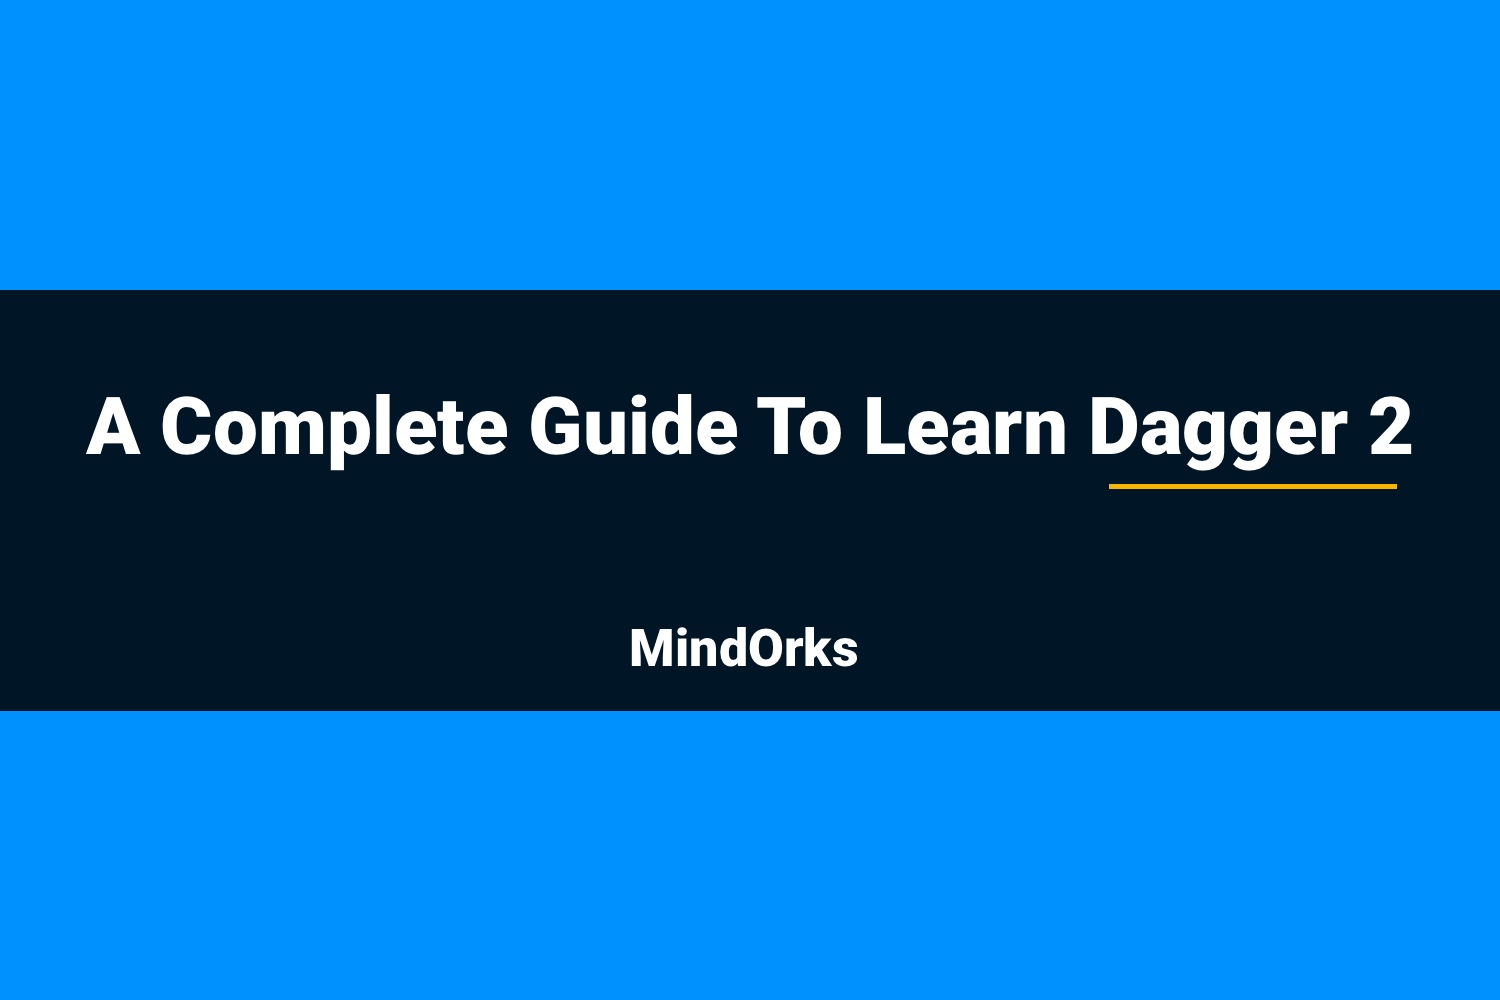 A Complete Guide To Learn Dagger 2